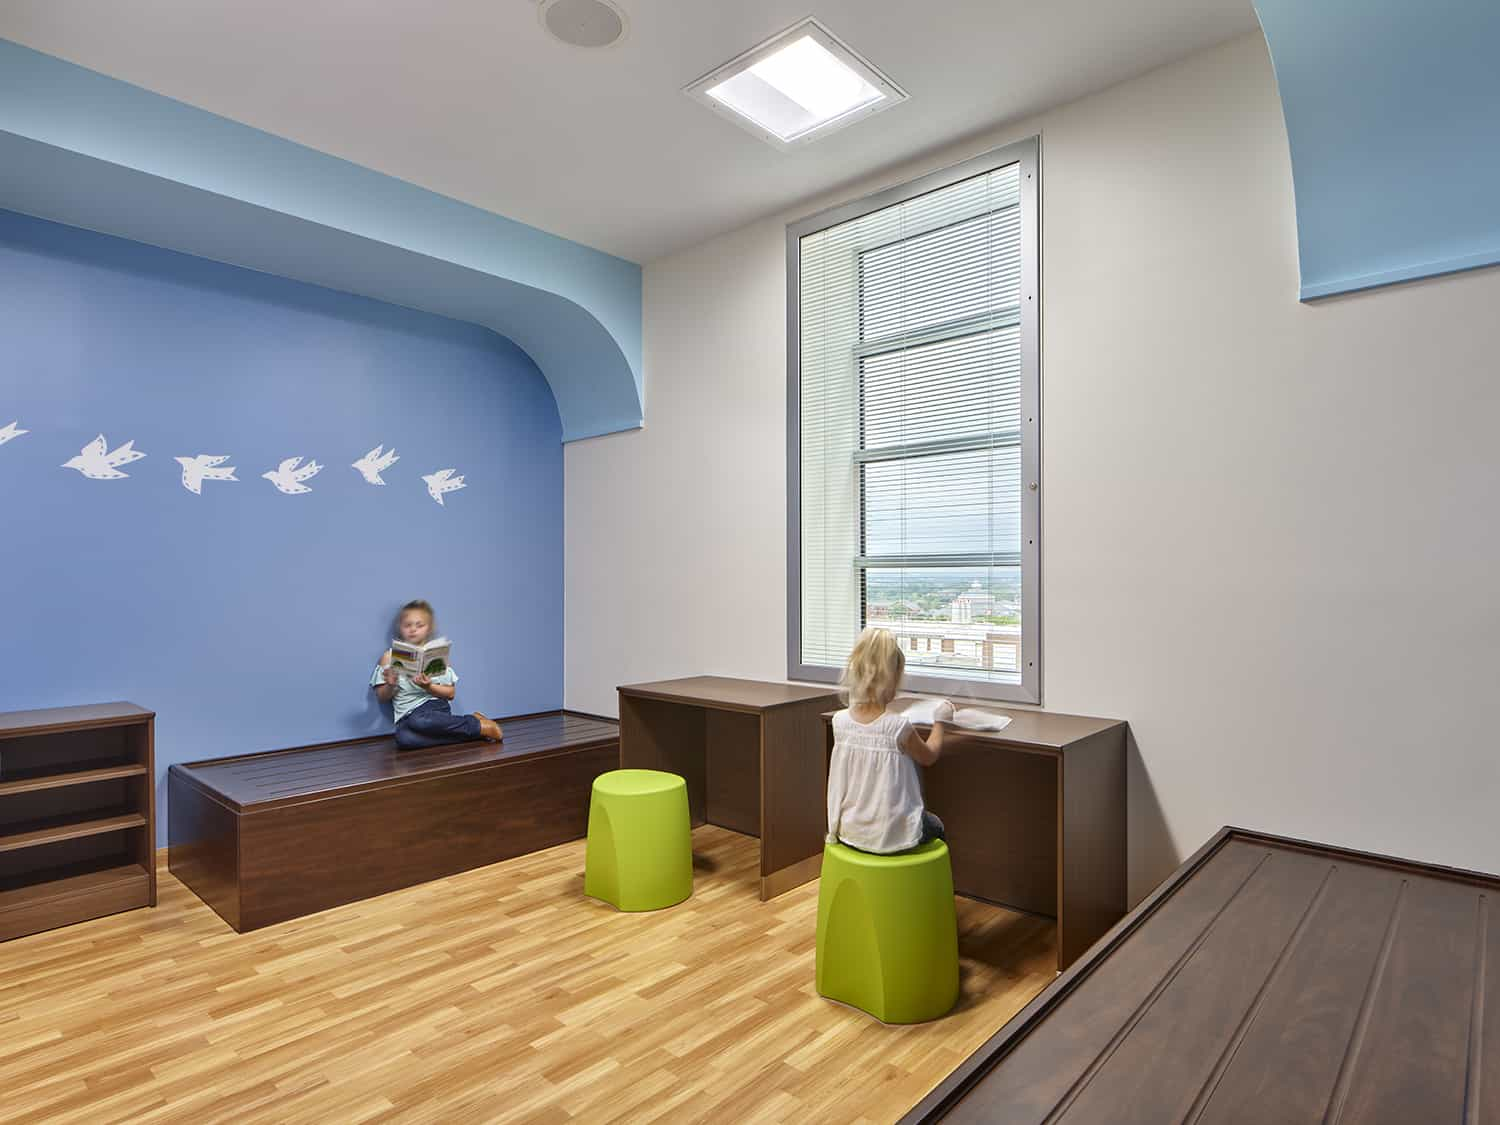 An example of a double patient room in the CAP unit.